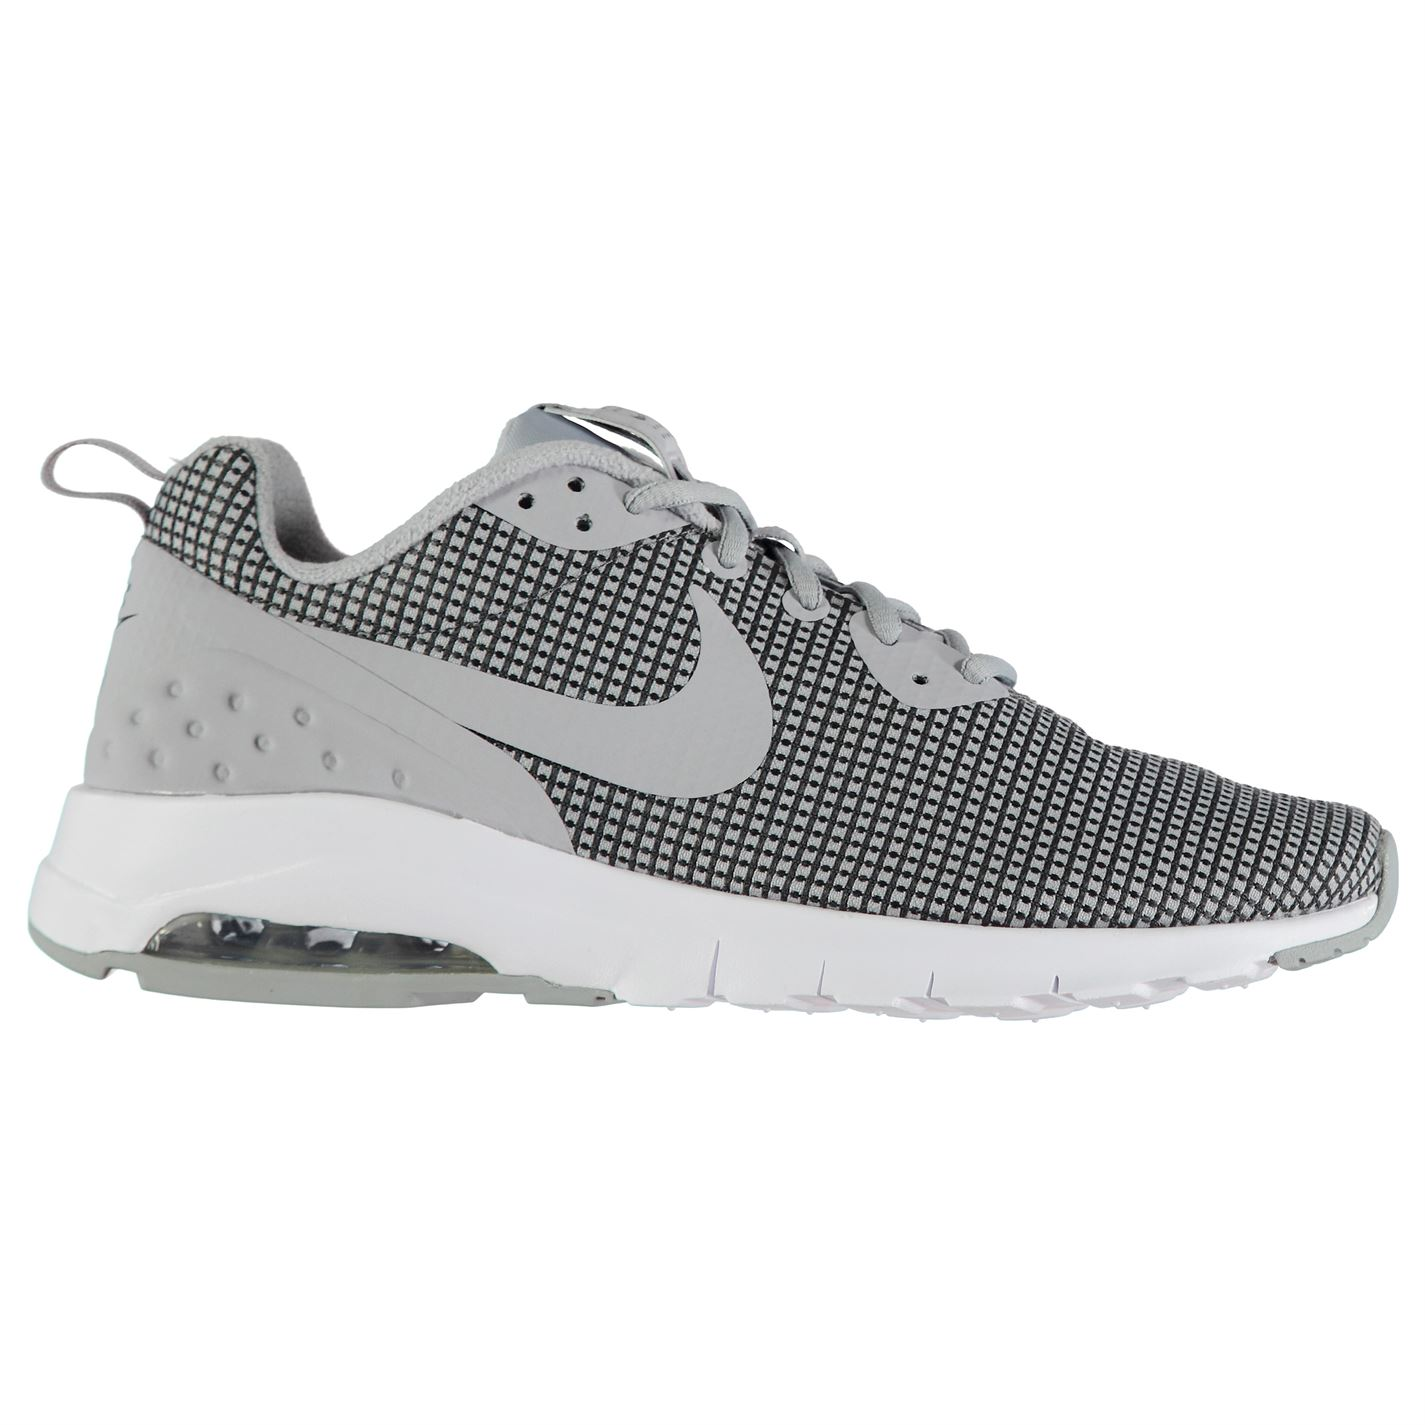 15595538a5f Мъжки маратонки Nike Air Max Motion Low Mens Trainers - Grey/White с цена  от лв - Sravni.bg